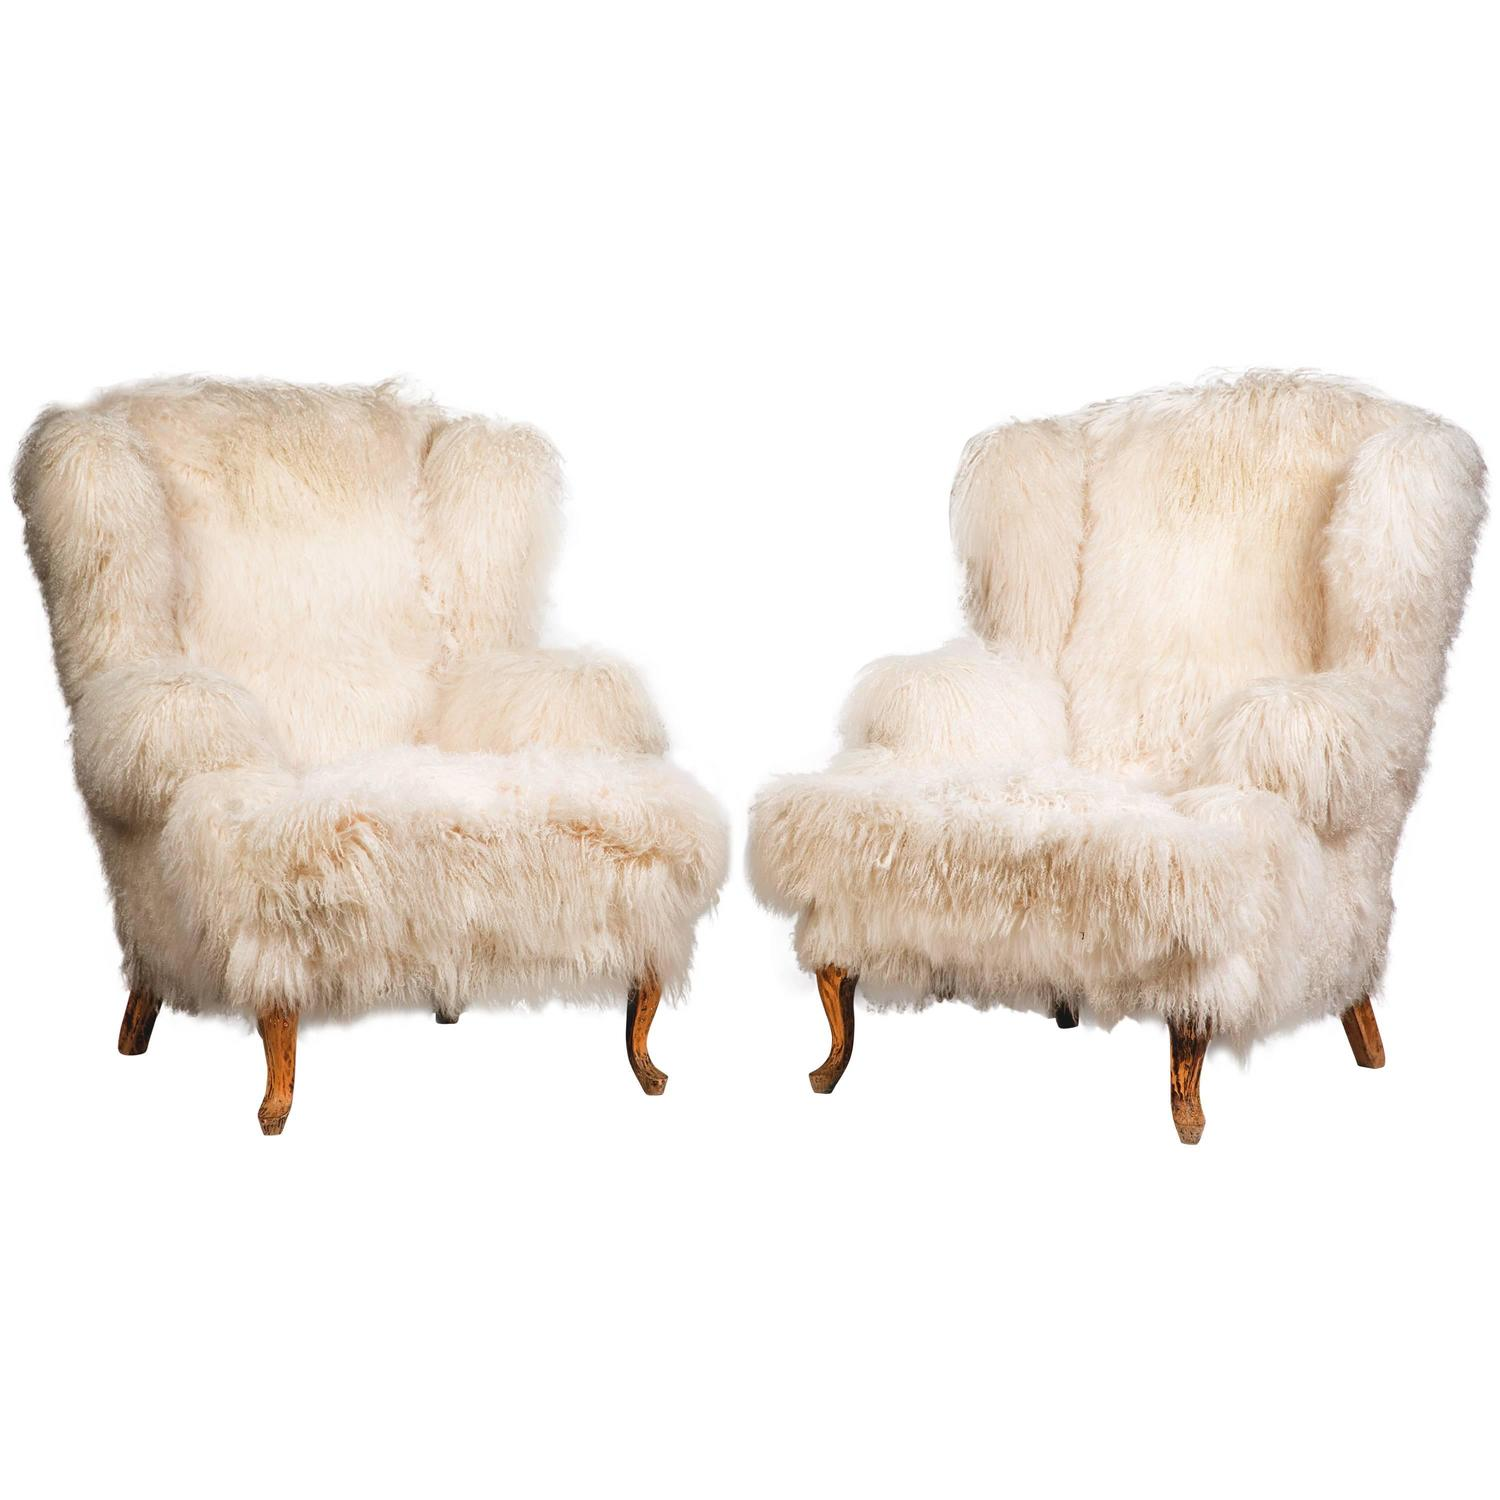 Mongolian Lamb Wingback Chairs For Sale At 1stdibs